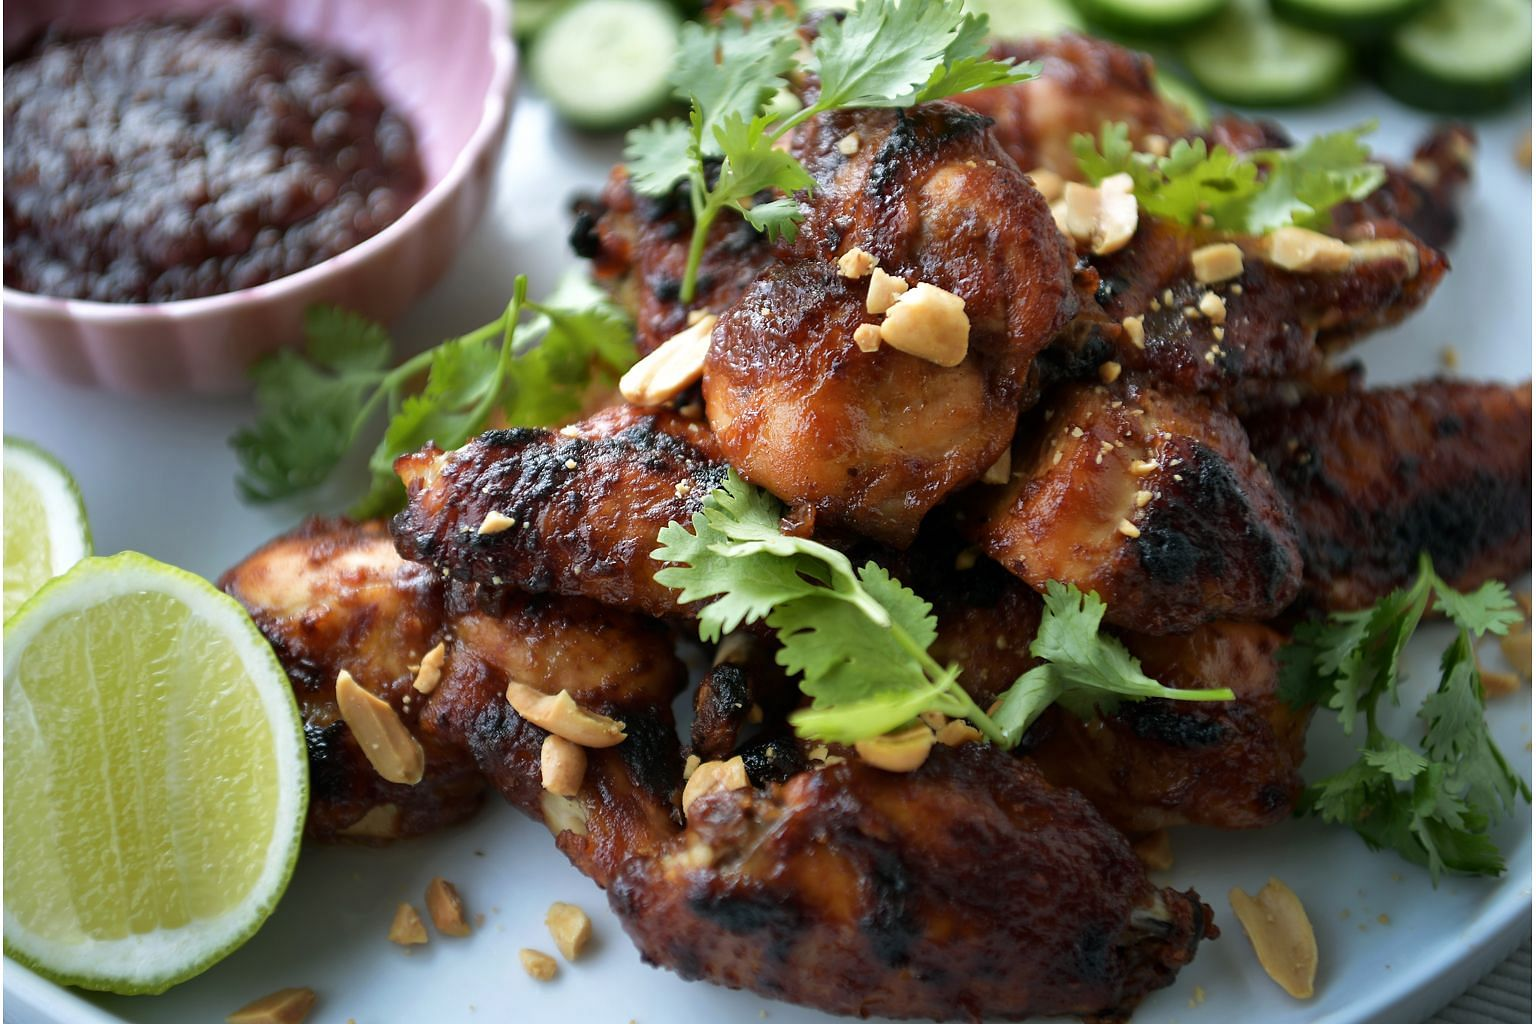 The writer's recipe for tamarind wings is inspired by a starter she had at Emma's Torch, a social enterprise, in Brooklyn.